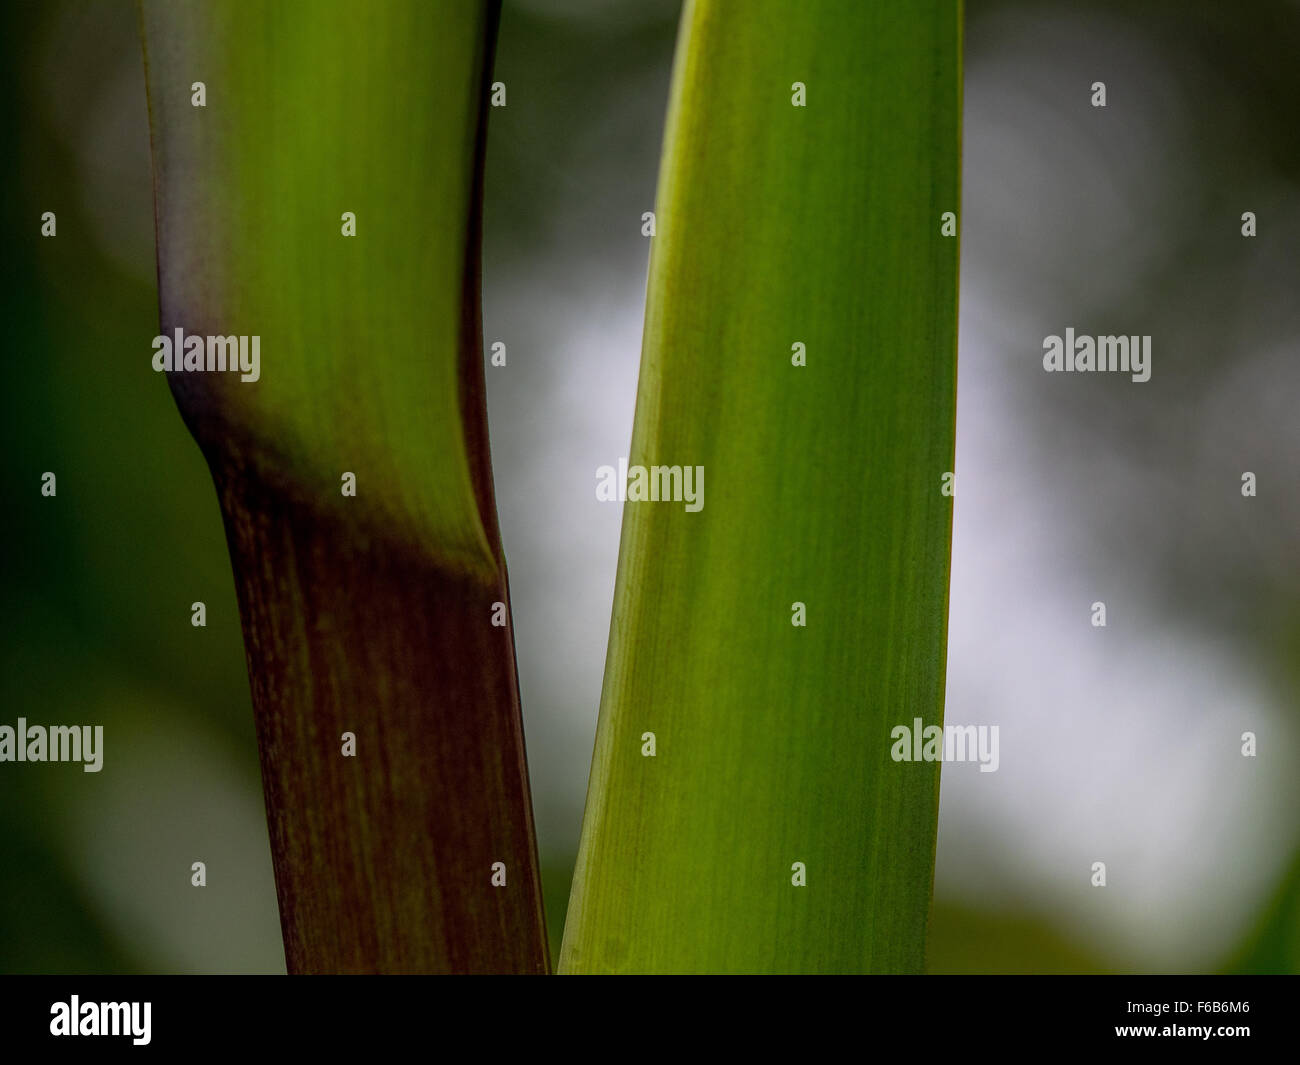 Abstract,. Smooth green transition to Black, bokeh highlights behind. Calm, reasoned discussion. The feeling of - Stock Image